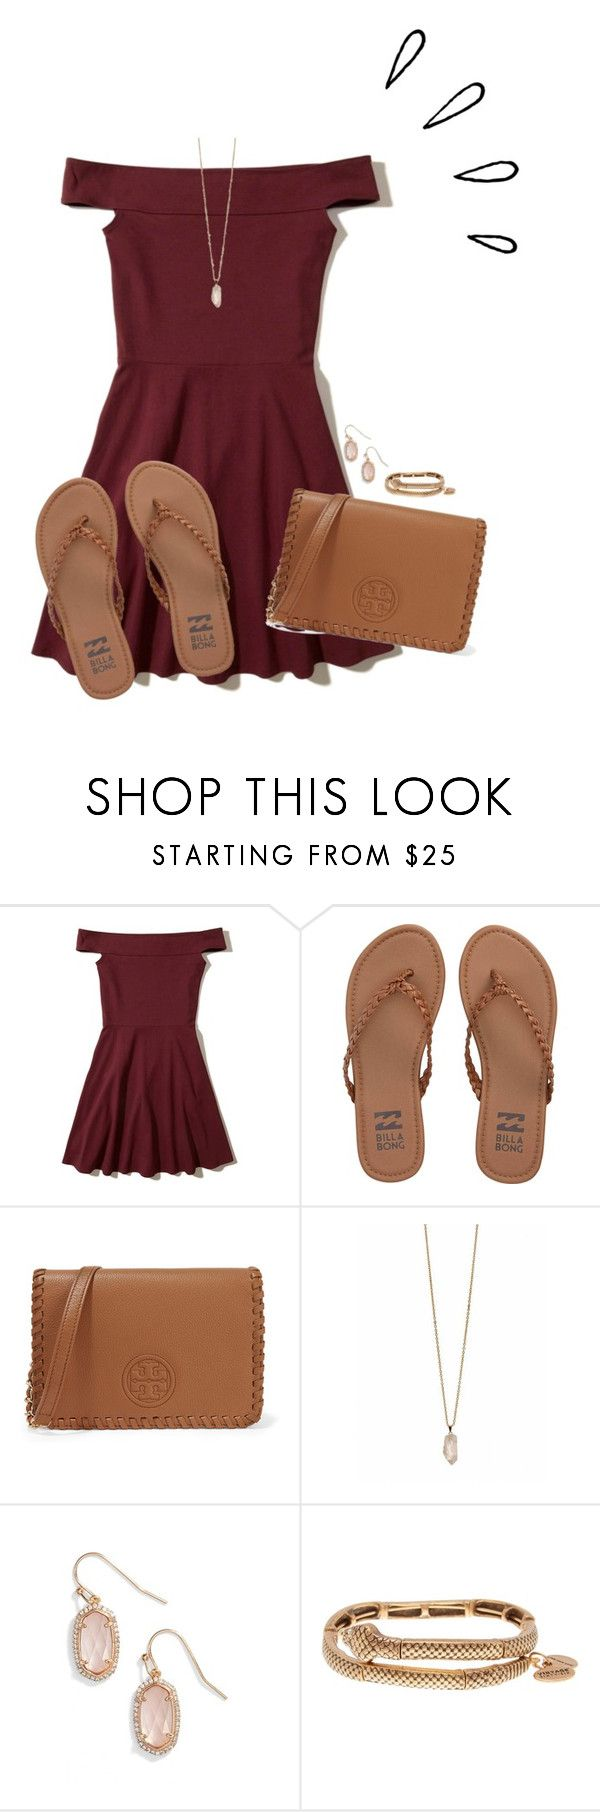 """""""Set #1 By My Cousin!"""" by annaewakefield ❤ liked on Polyvore featuring Hollister Co., Billabong, Tory Burch, Zoya, Kendra Scott, Alex and Ani and Old Navy"""